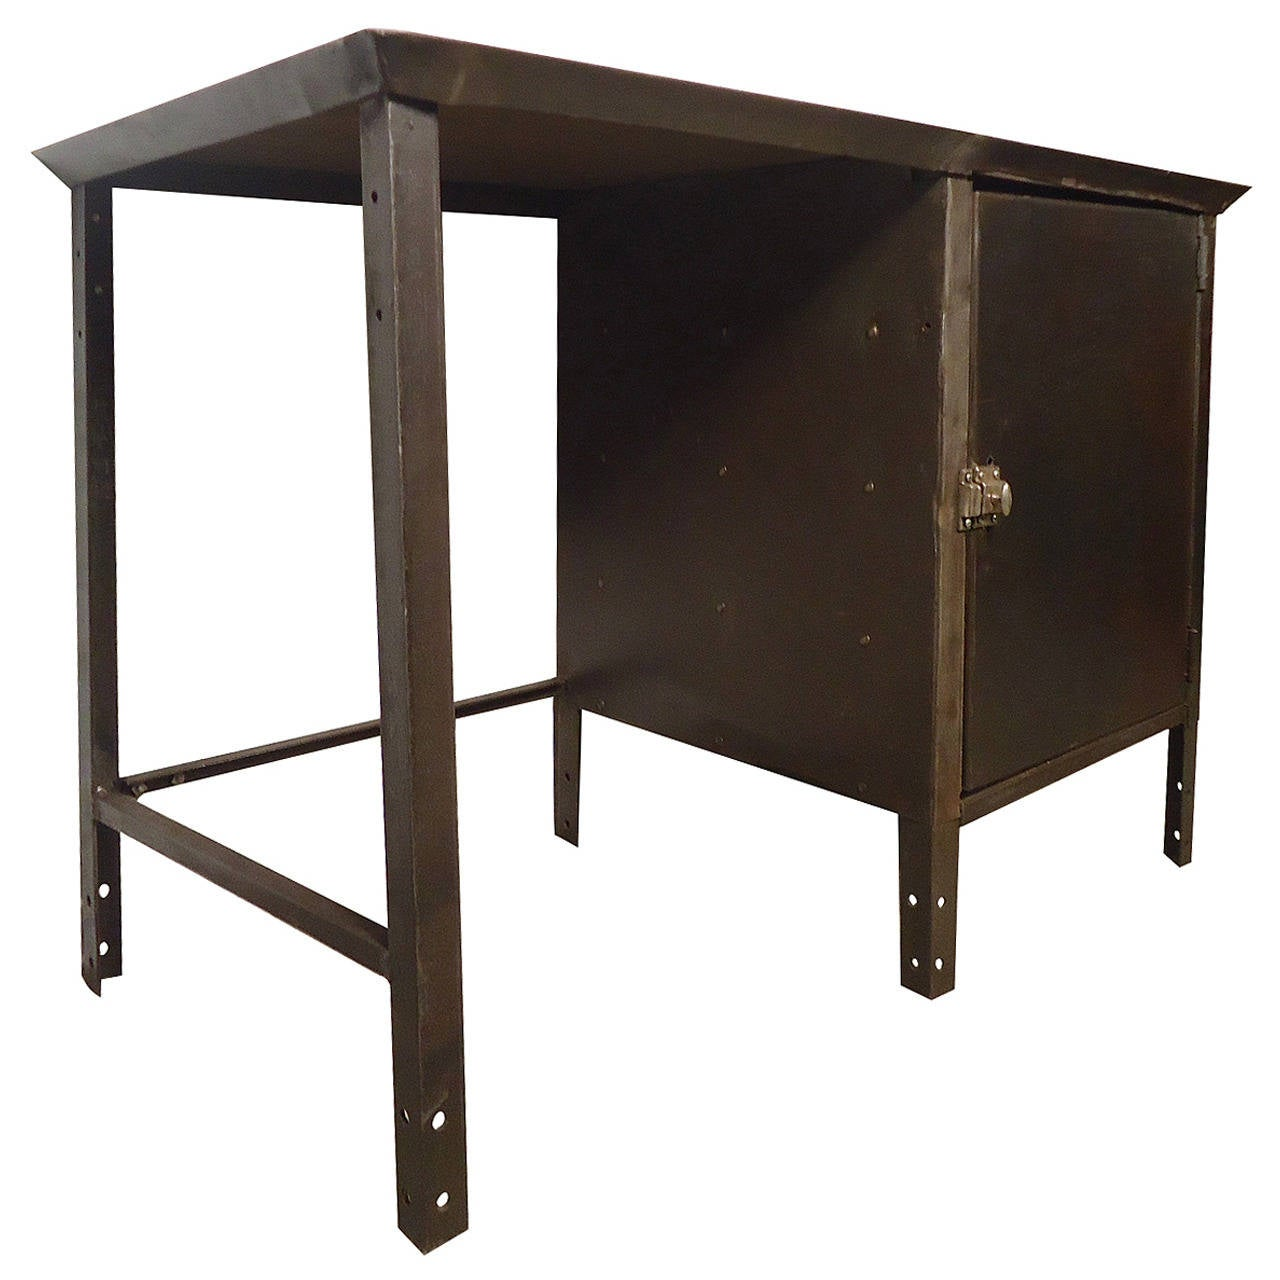 Unusual Industrial Metal Desk with Storage